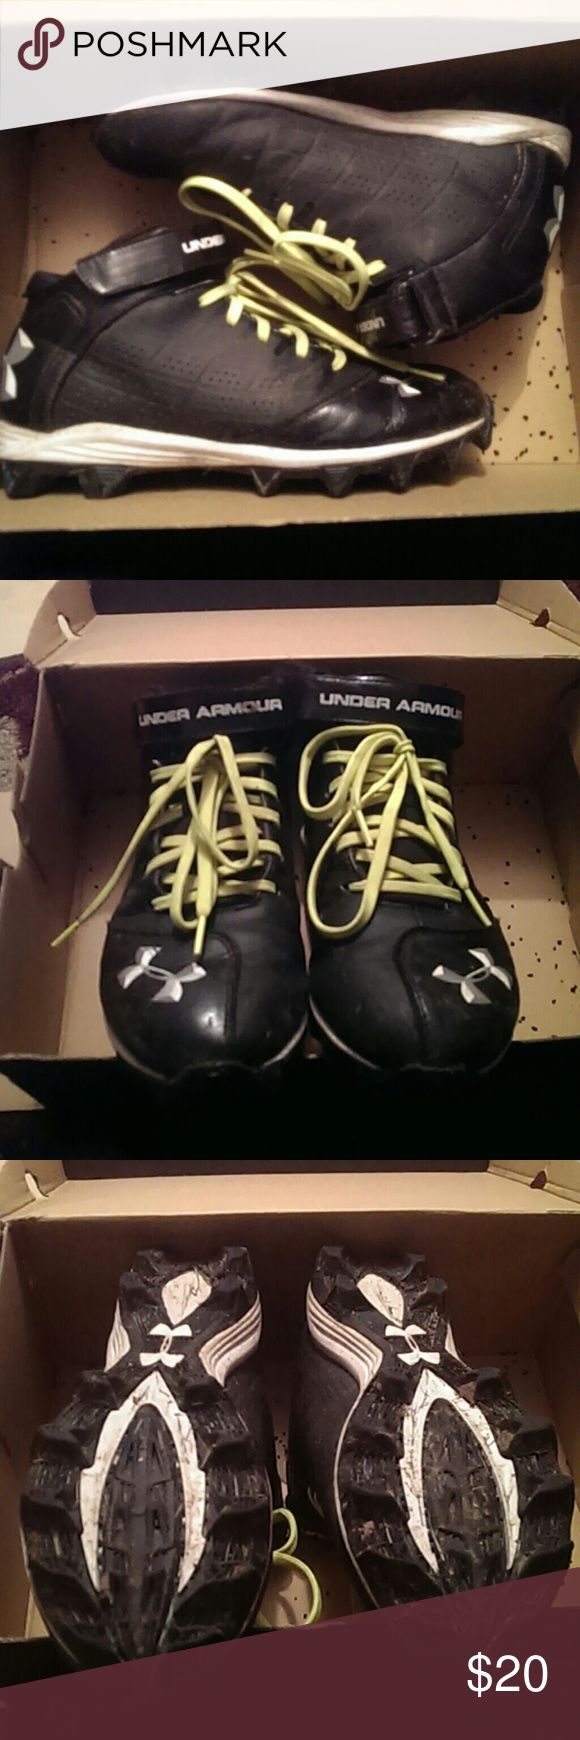 Under Armour Boys Football Cleats Worn for a season but still in great shape! No holes, water doesn't get through, plenty of grip from the bottoms. Could switch out laces. Has Velcro strap above laces. Ankles are cushioned. Could come with box, buts that's a bit beat up. Box says 7.5 US shoes size, assume youth not men's.  (Photo shows grass and dirt, will clean before shipment for sure!!) Under Armour Shoes